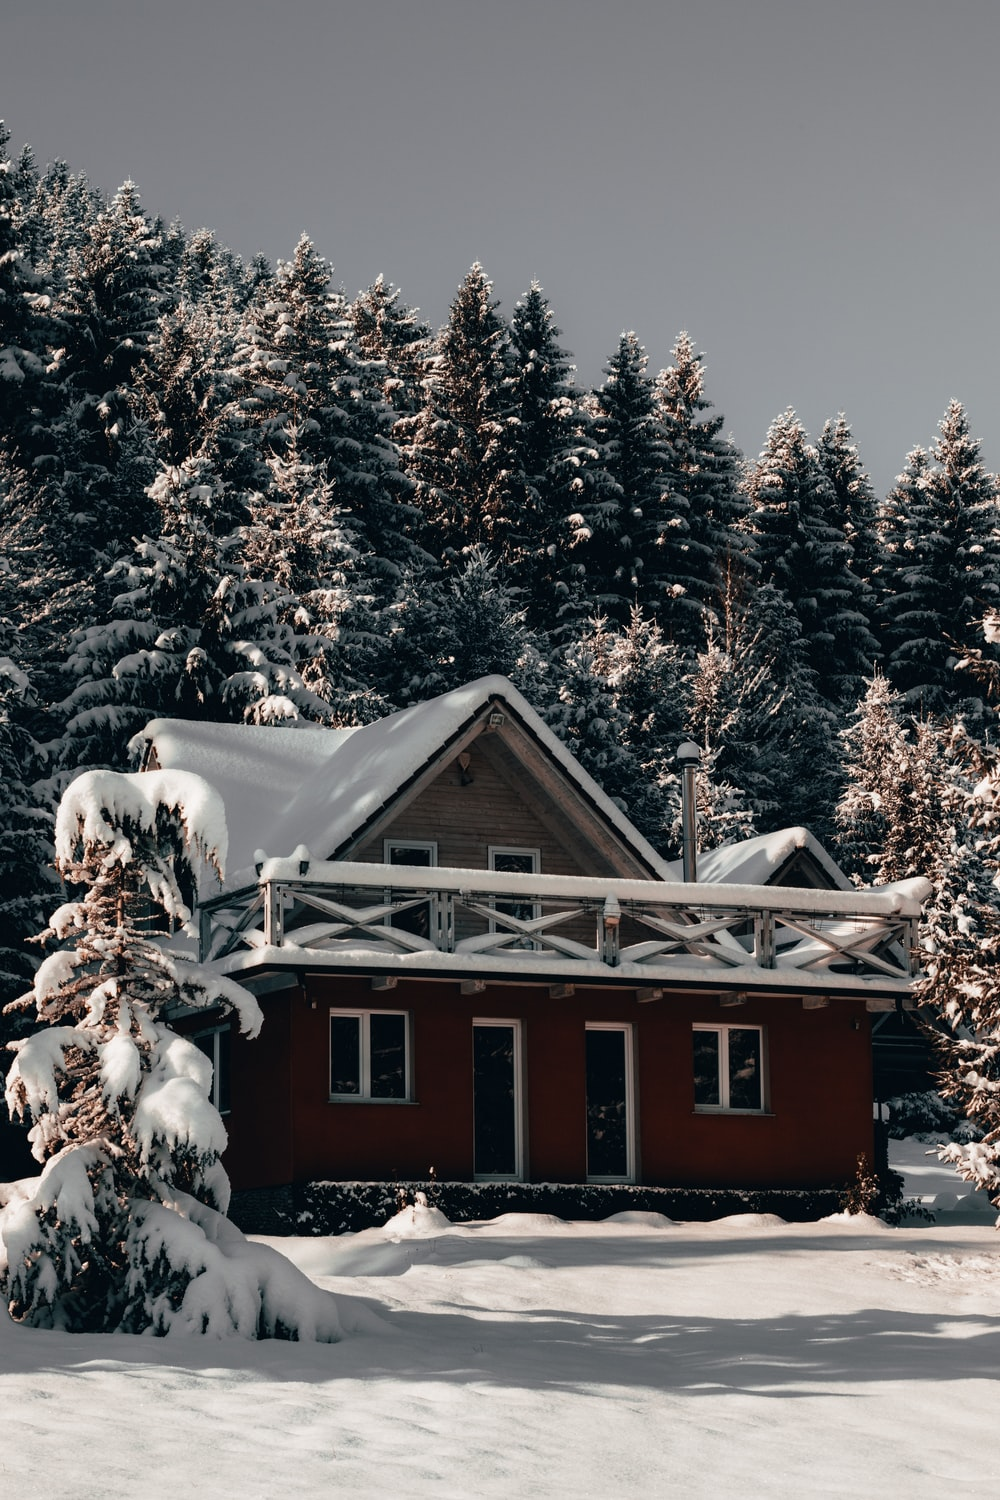 snow covered red house near trees during day